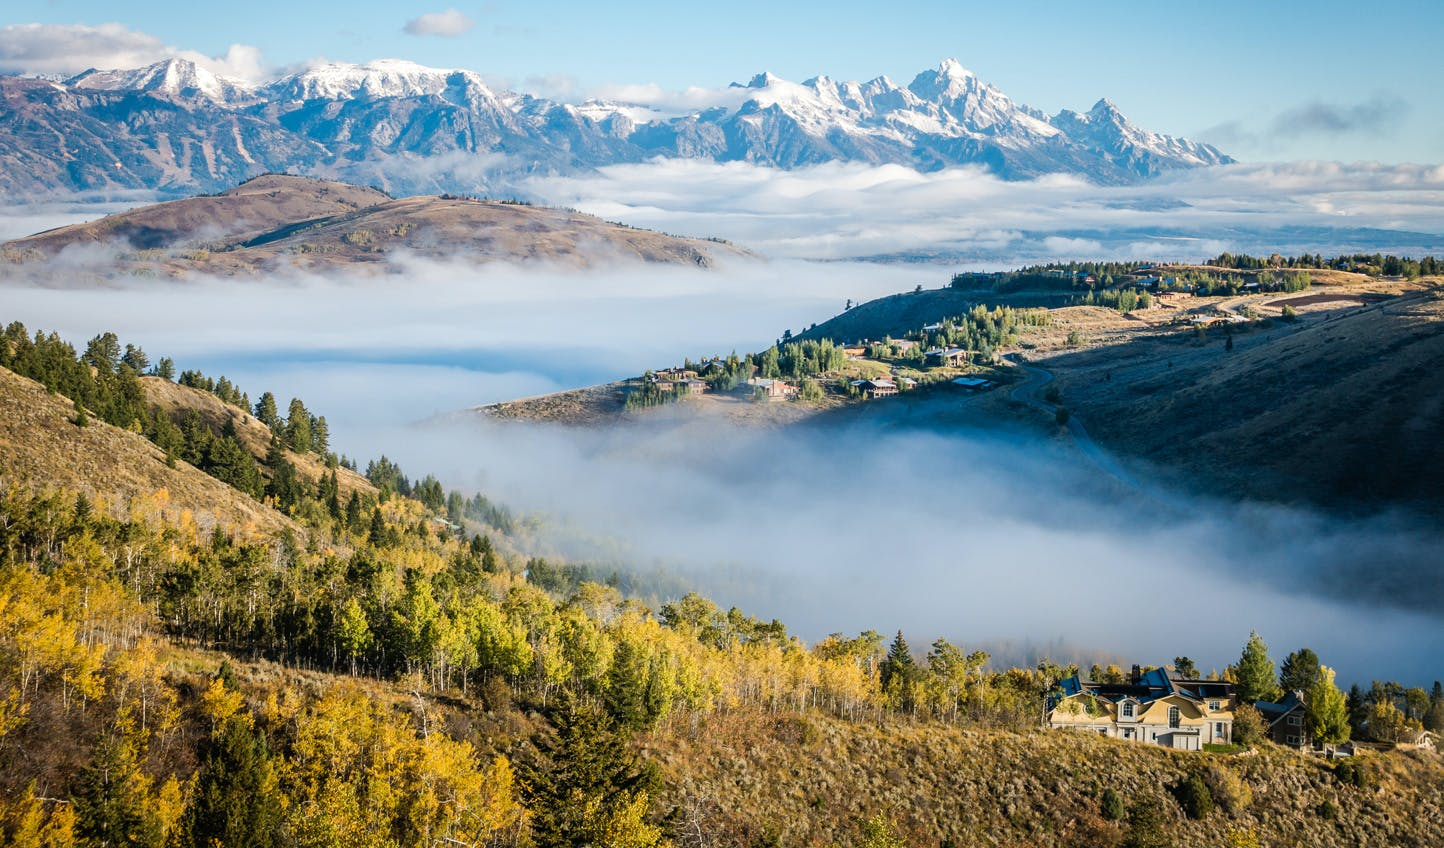 Luxury vacations to Wyoming